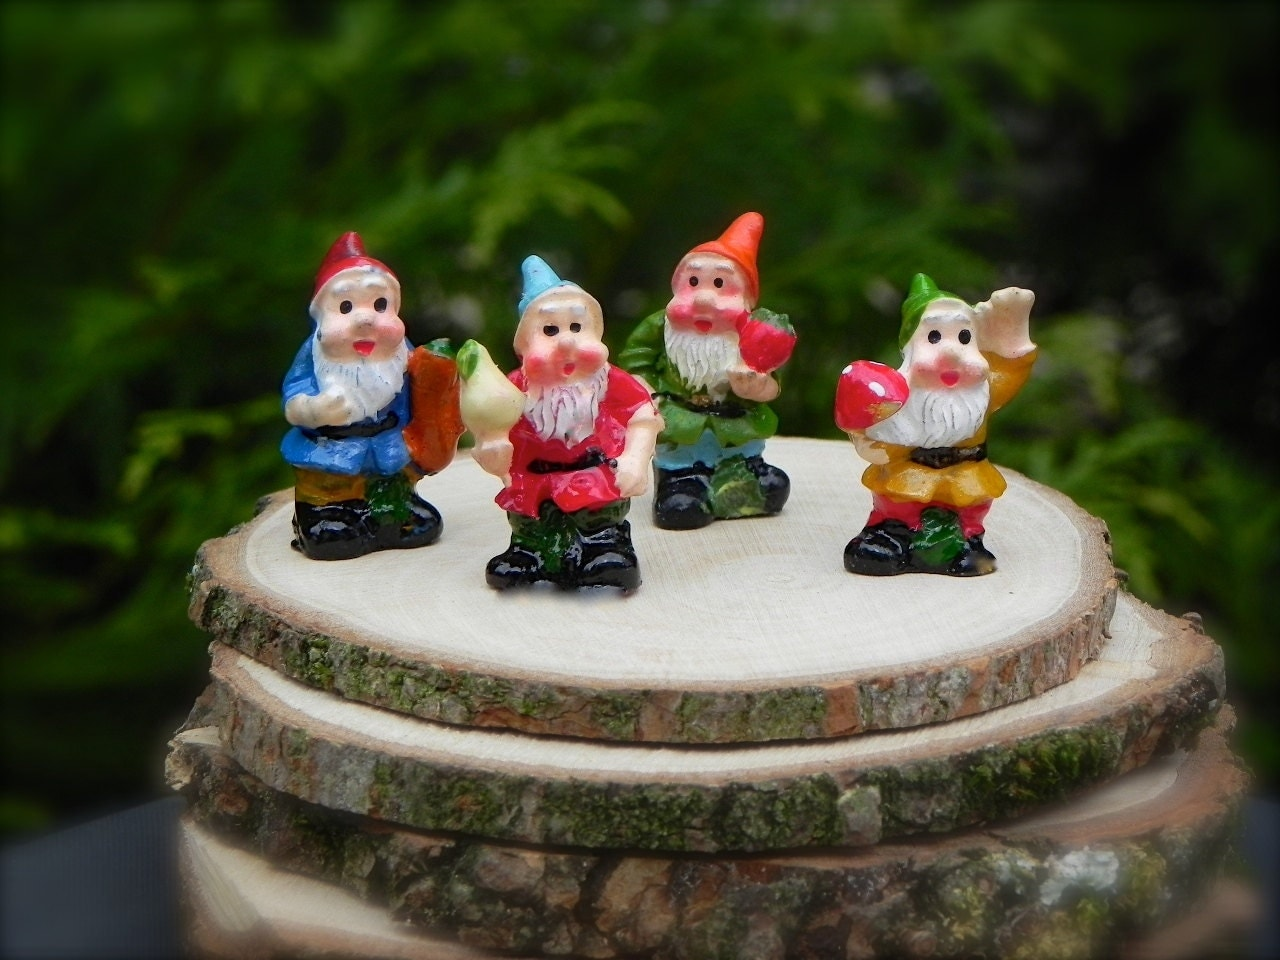 Gnome Garden: Miniature Gnomes Miniature Fairy Garden Accessories